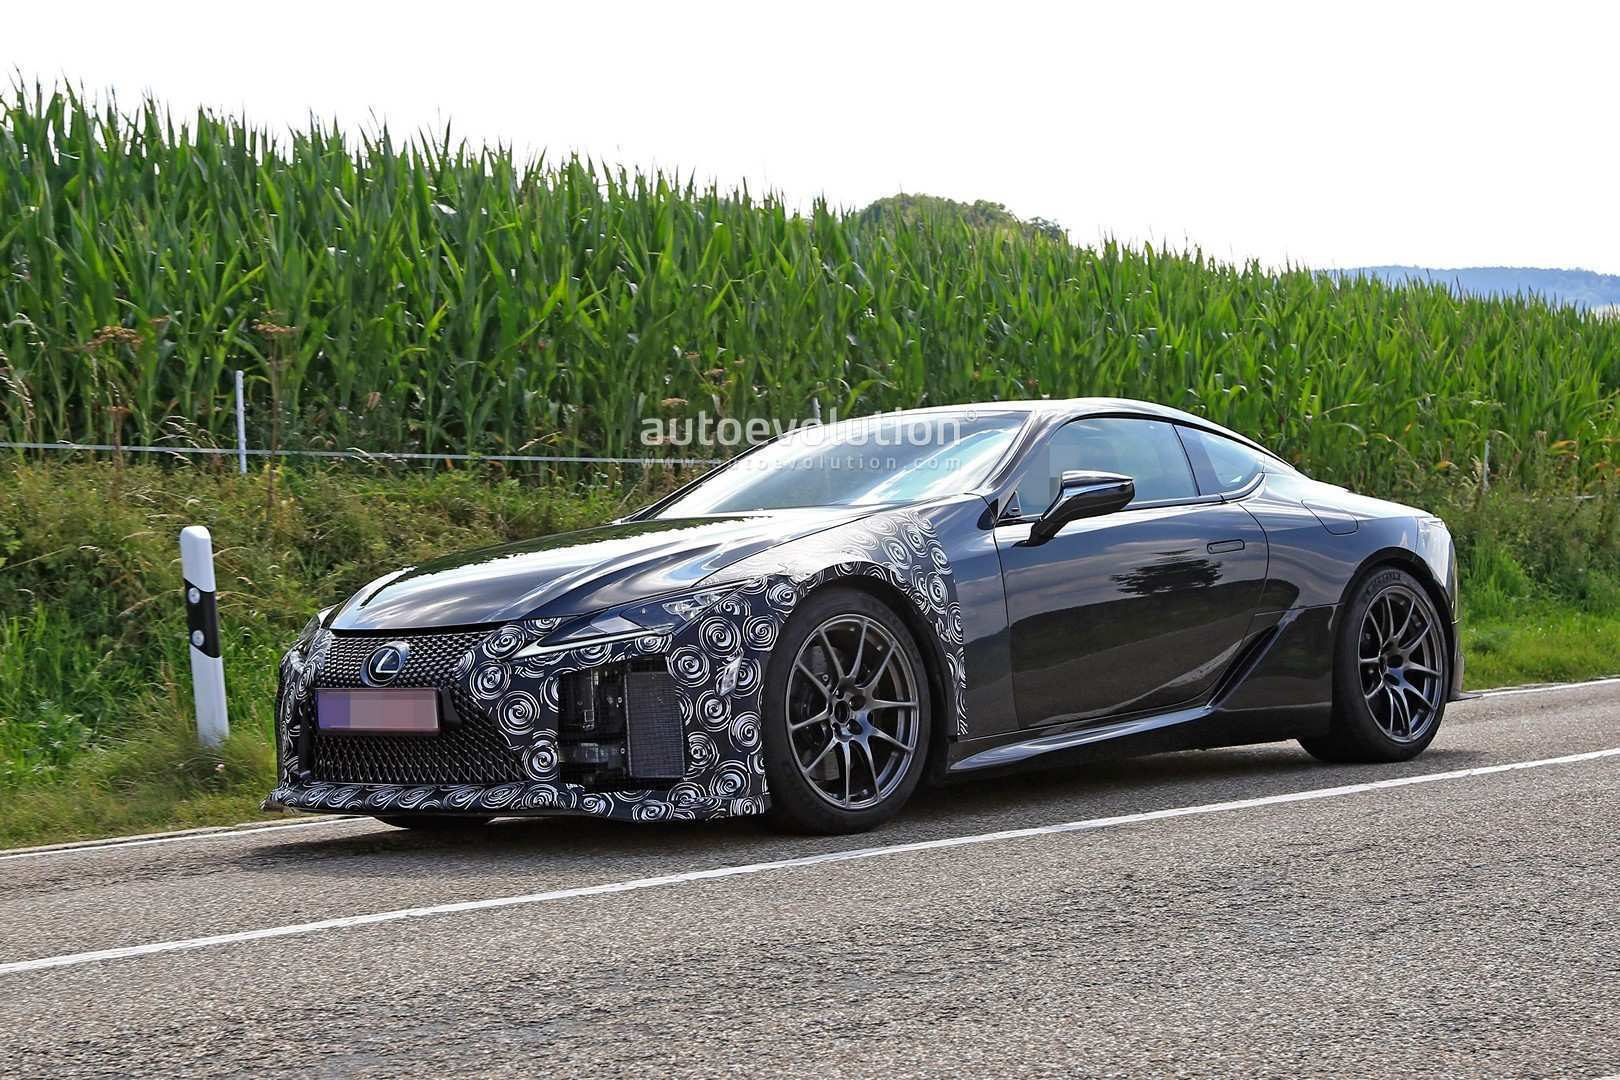 42 The Best Lexus Lc F 2020 Spy Shoot